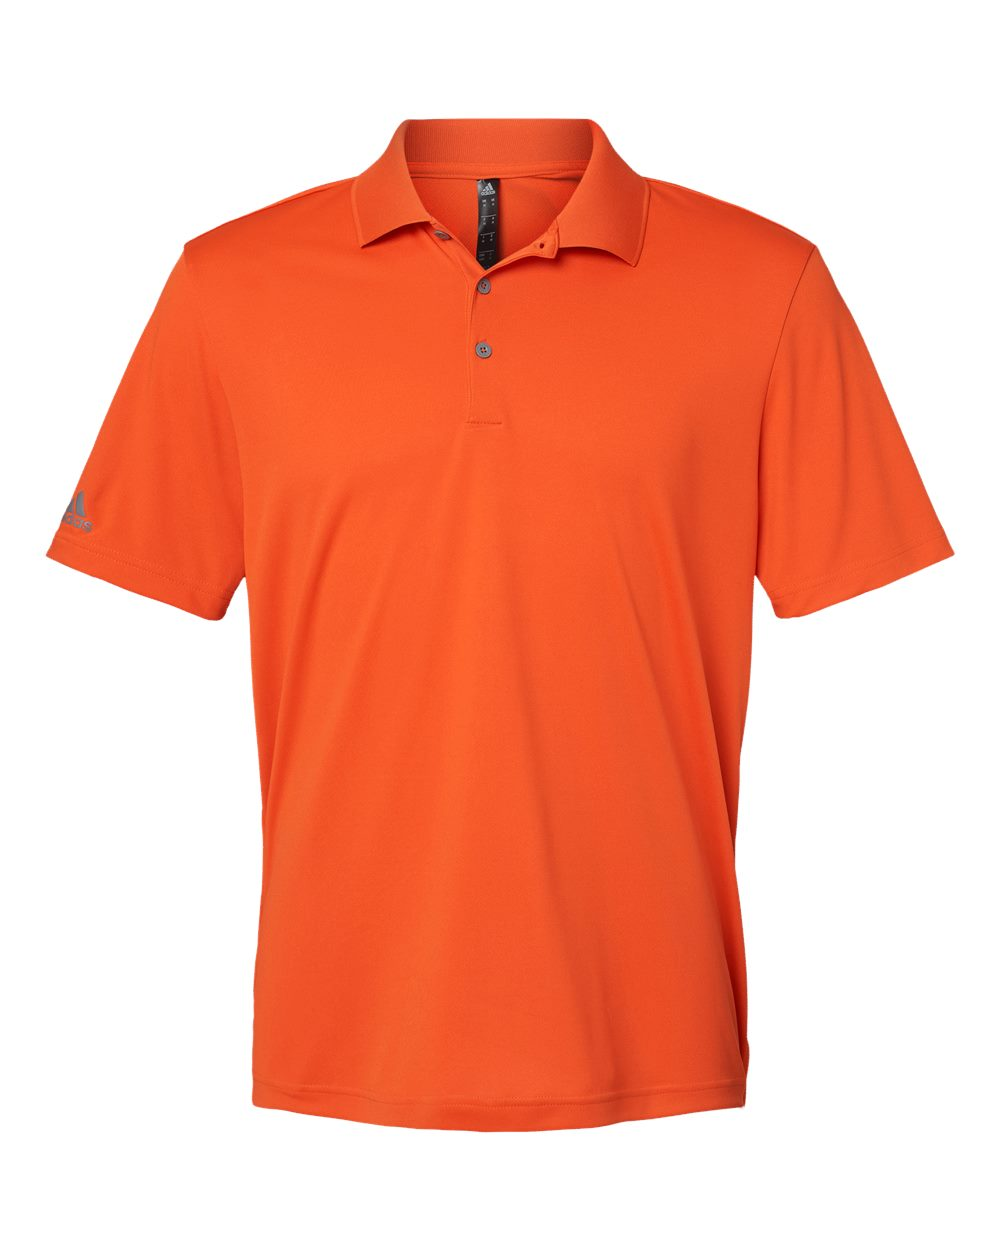 Adidas-Performance-Sport-Shirt-Polo-Button-A230-up-to-4XL miniature 34